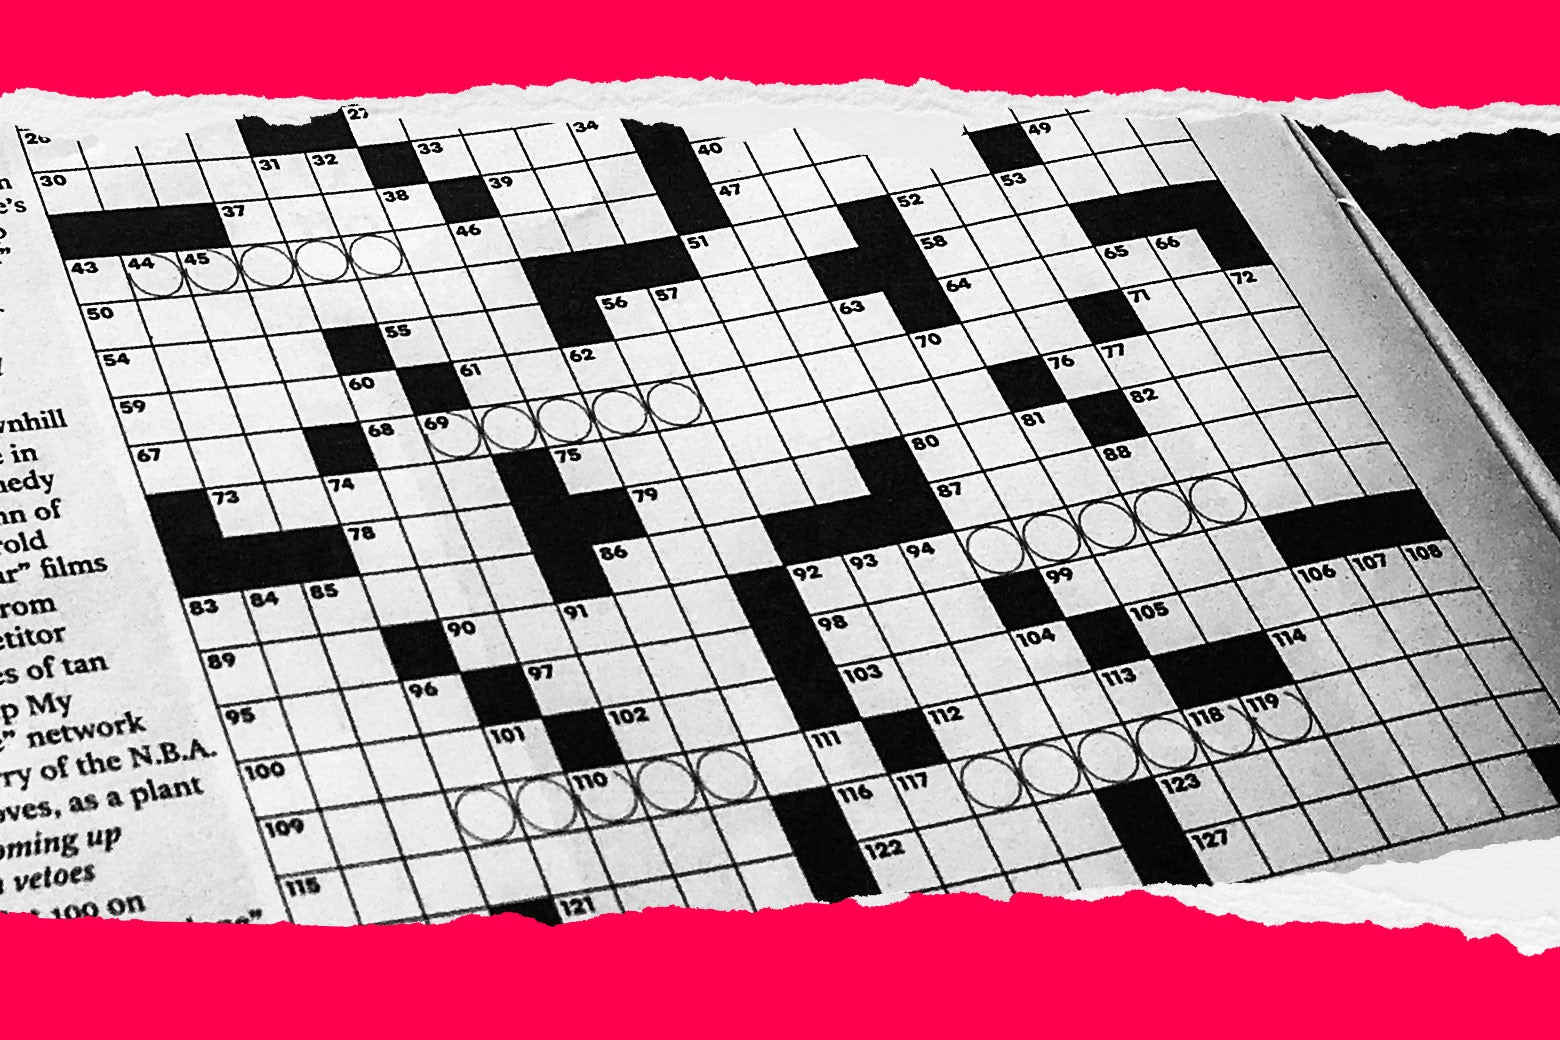 graphic relating to Washington Post Crossword Puzzle Printable identified as The NYT crossword puzzles employ the service of of an ethnic slur states a whole lot